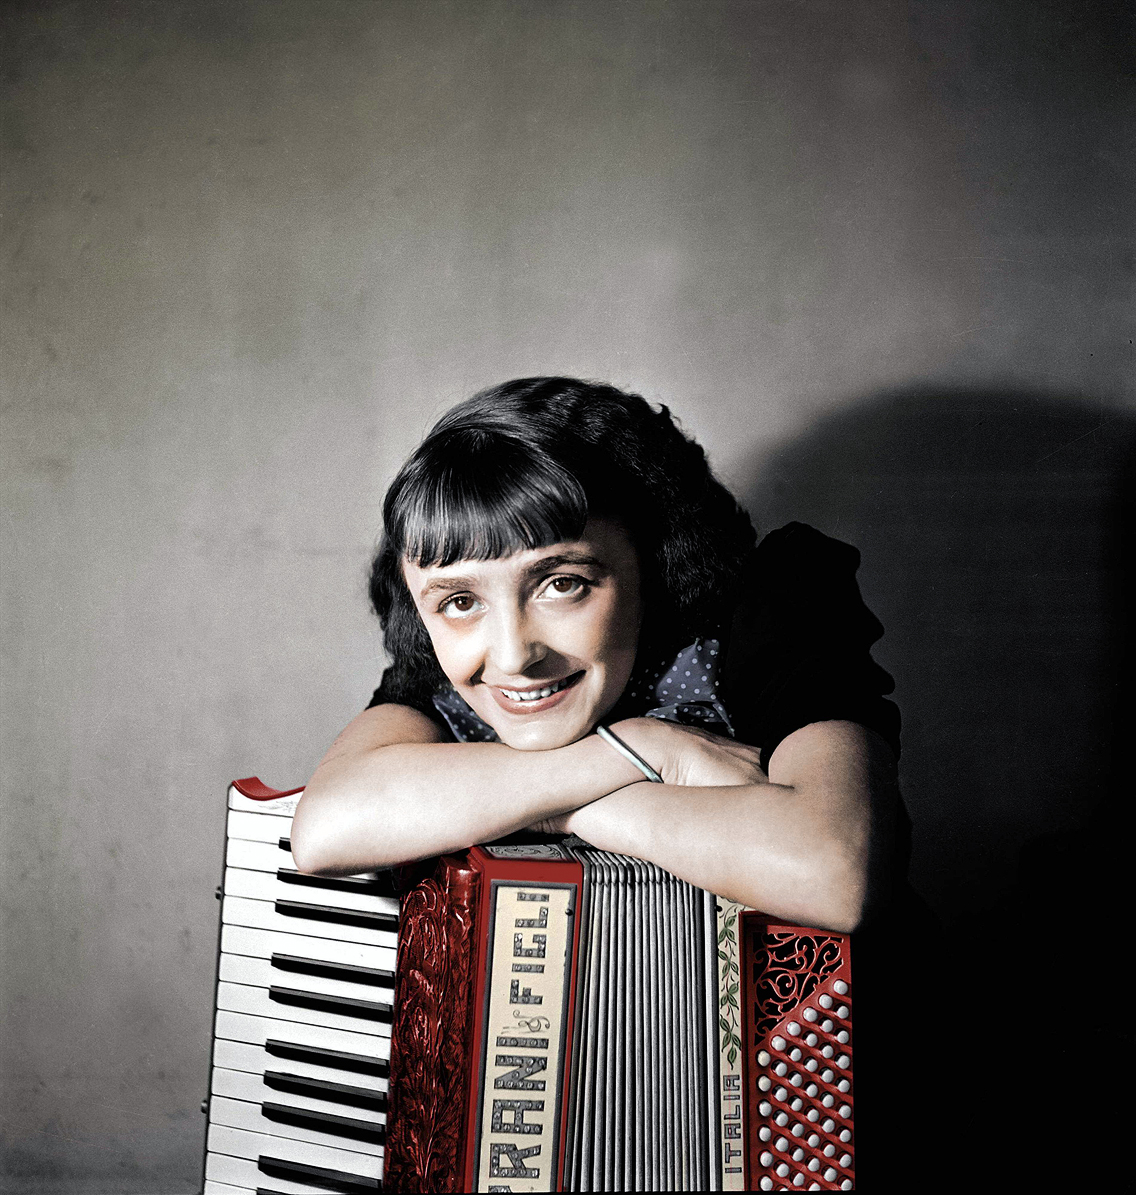 EDITH; PIAF; FRENCH SINGER; ACCORDION;